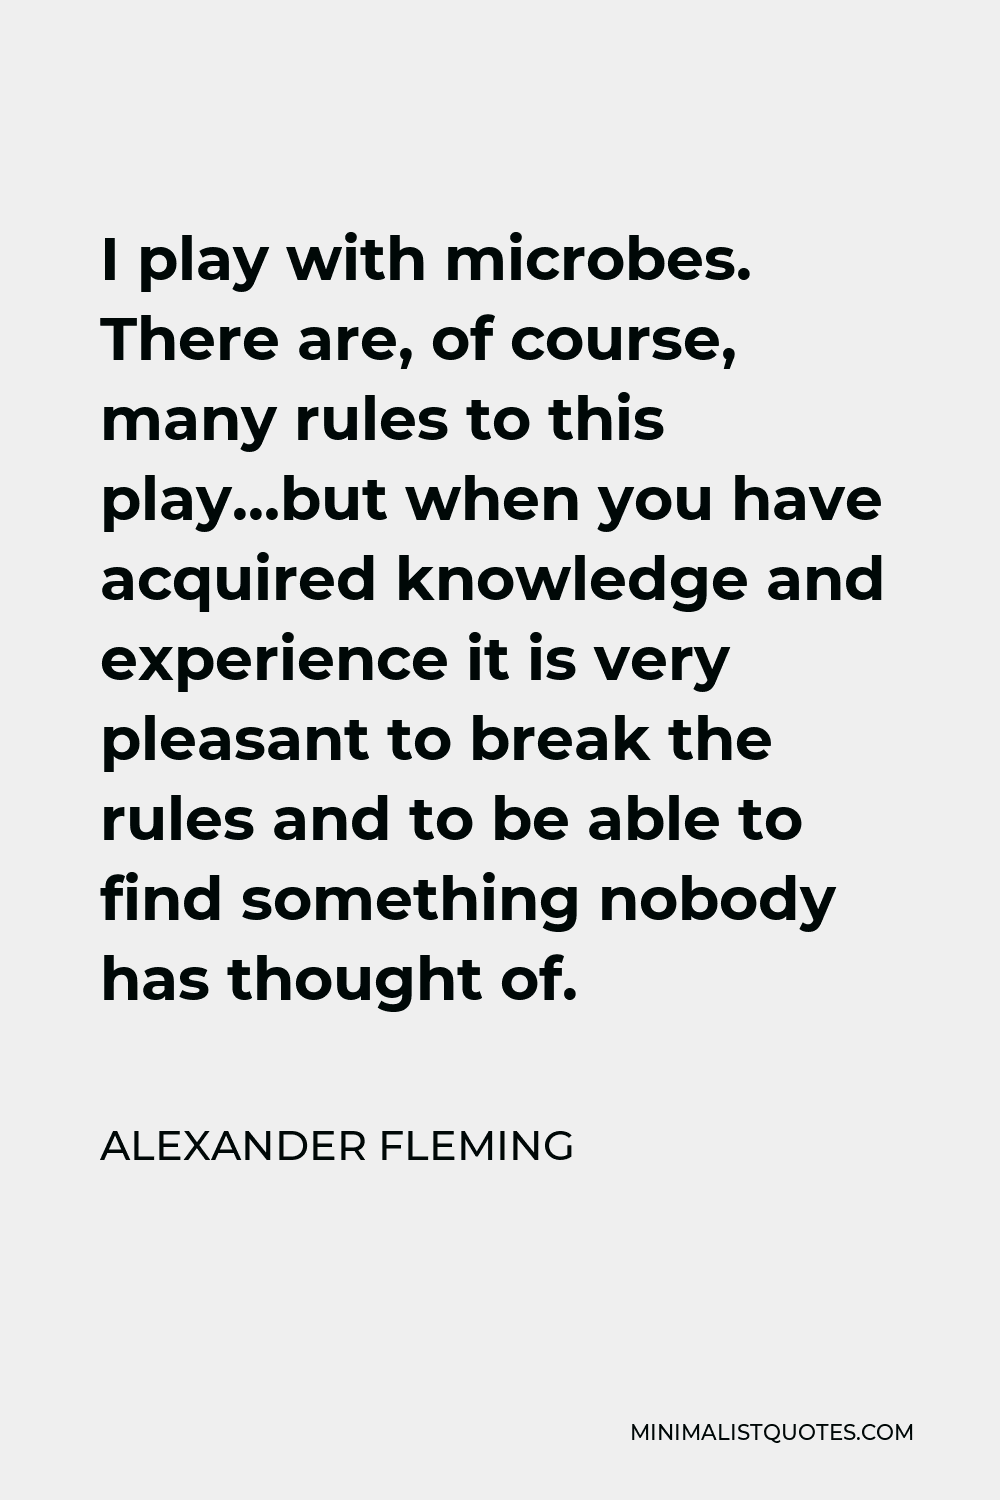 Alexander Fleming Quote - I play with microbes. There are, of course, many rules to this play…but when you have acquired knowledge and experience it is very pleasant to break the rules and to be able to find something nobody has thought of.